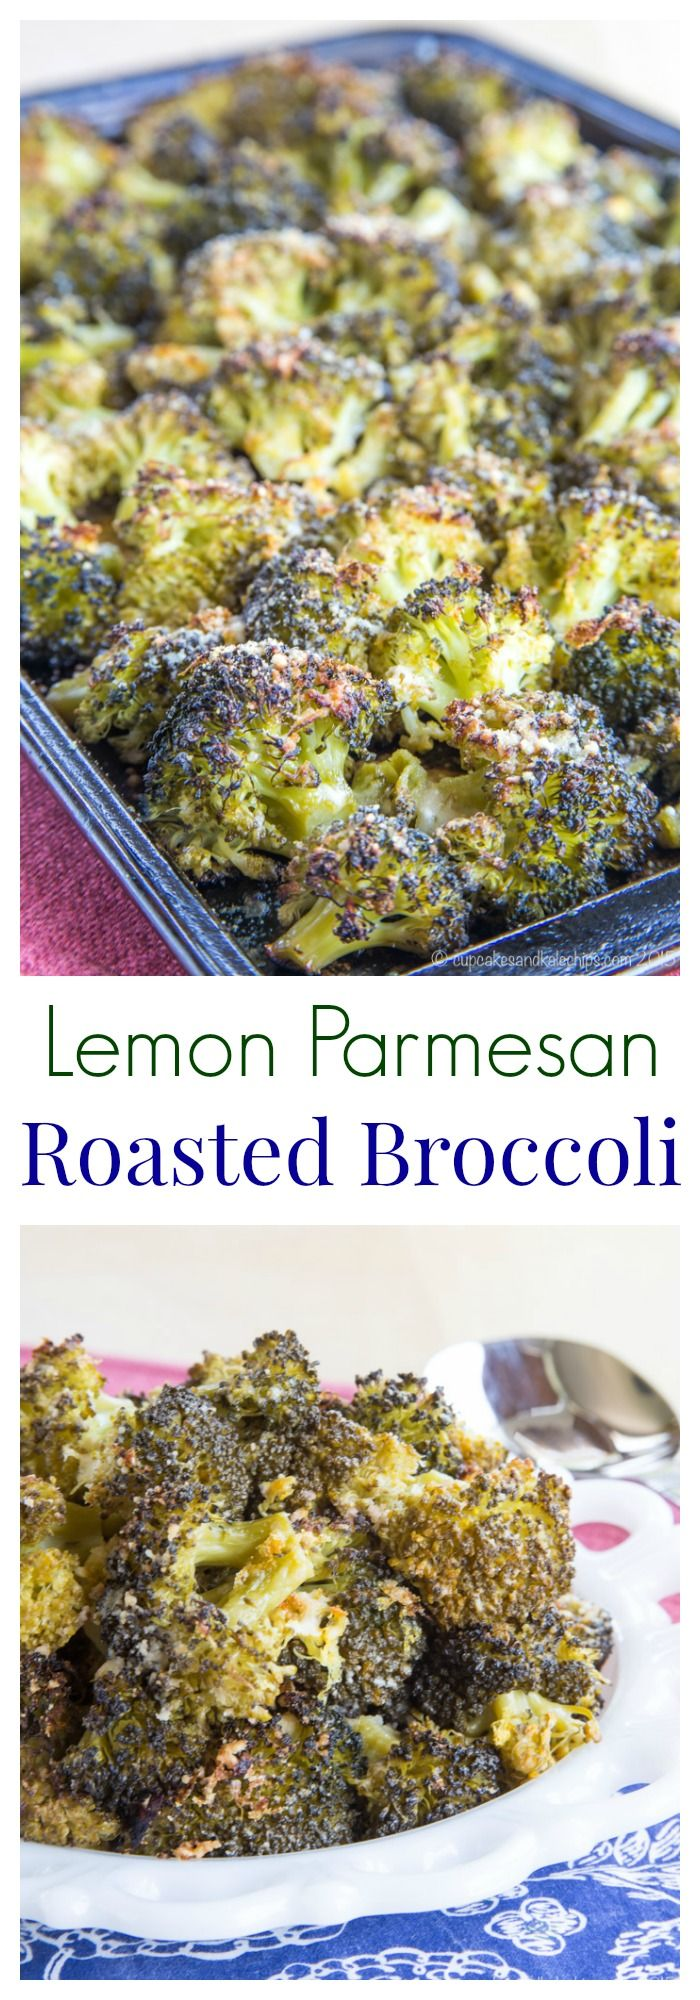 Lemon Parmesan Roasted Broccoli - a healthy and simple side dish with tons of flavor.